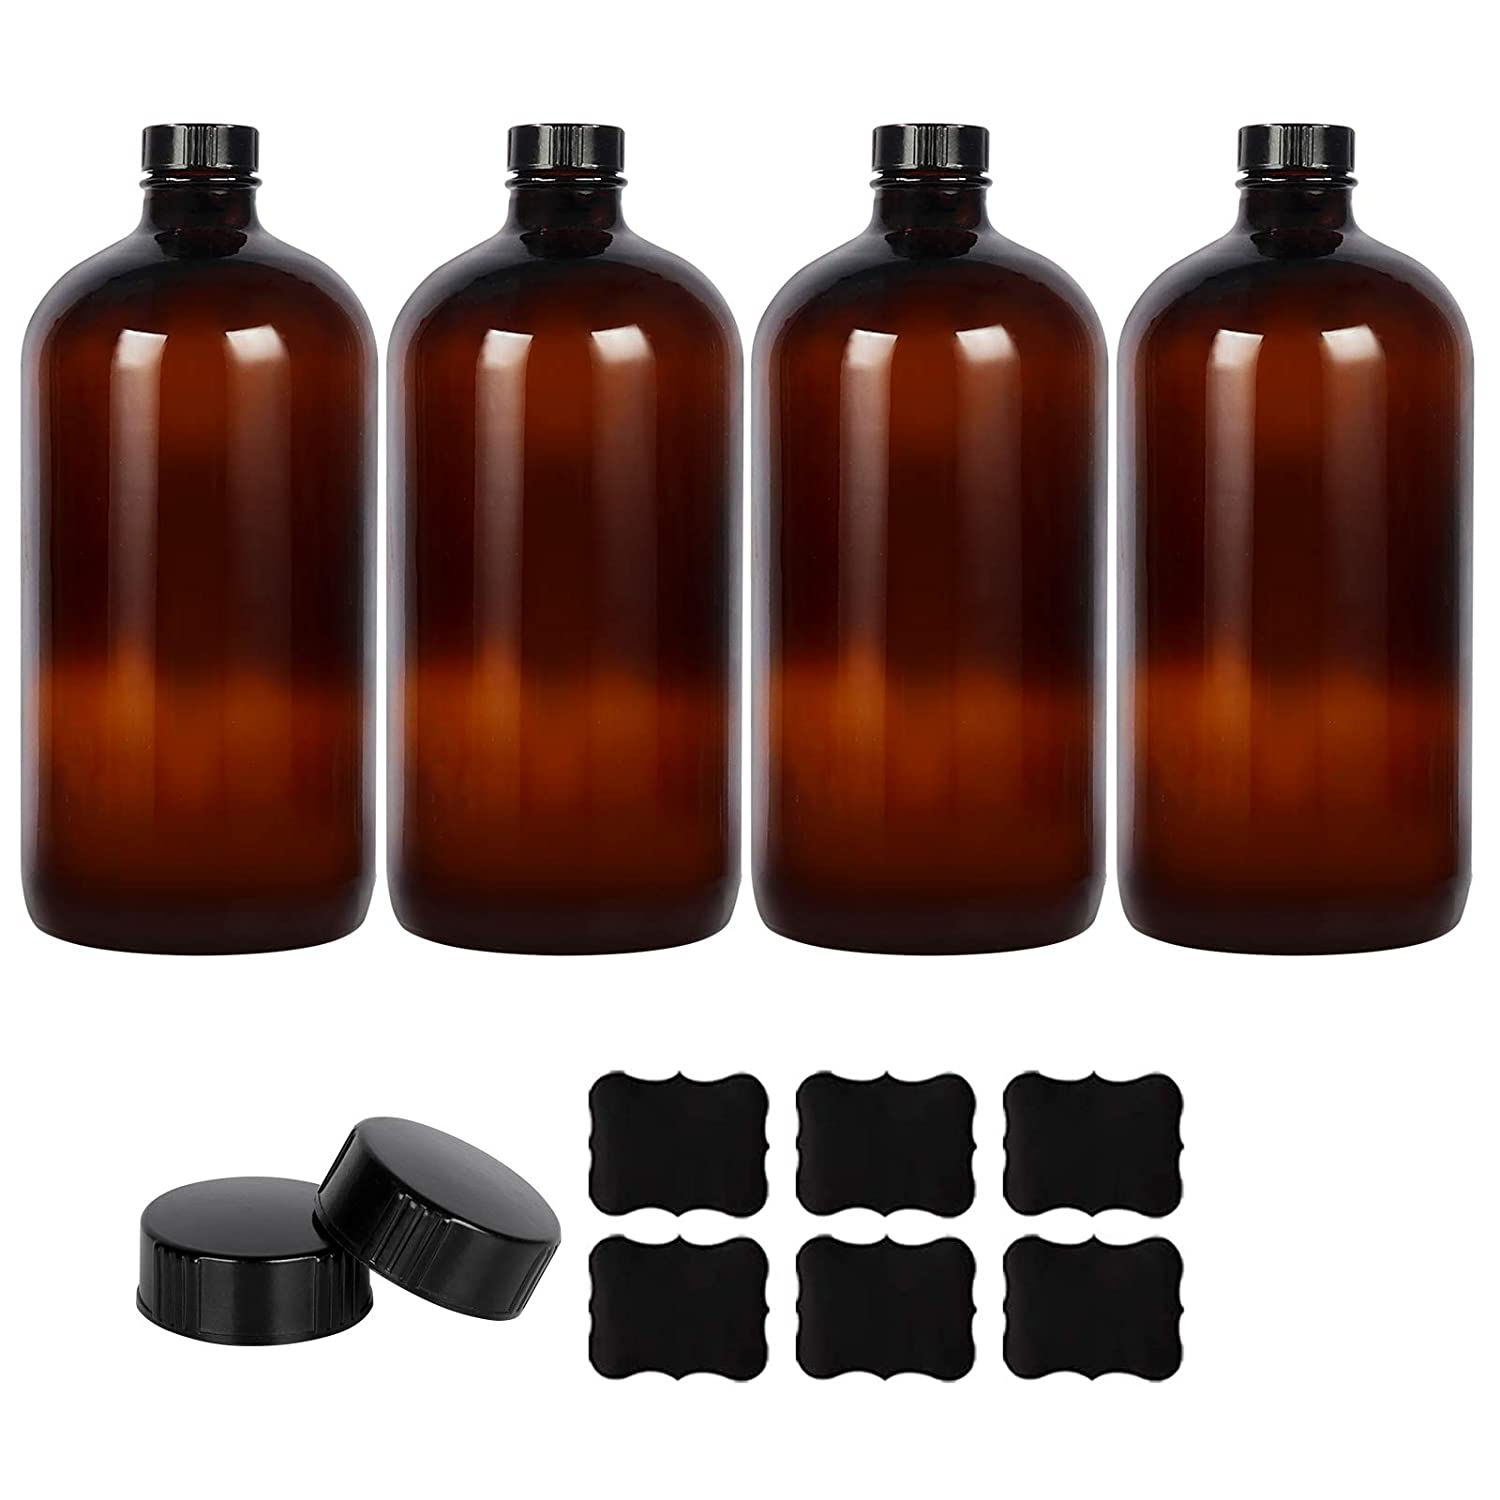 4 Pack - 1 Liter 32oz Amber Glass Boston Round Bottles with Air Tight Seal Phenolic Poly Cone Caps. Perfect Glass Containers for Secondary Fermentation,Storing Kombucha,Brewing and Juicing.